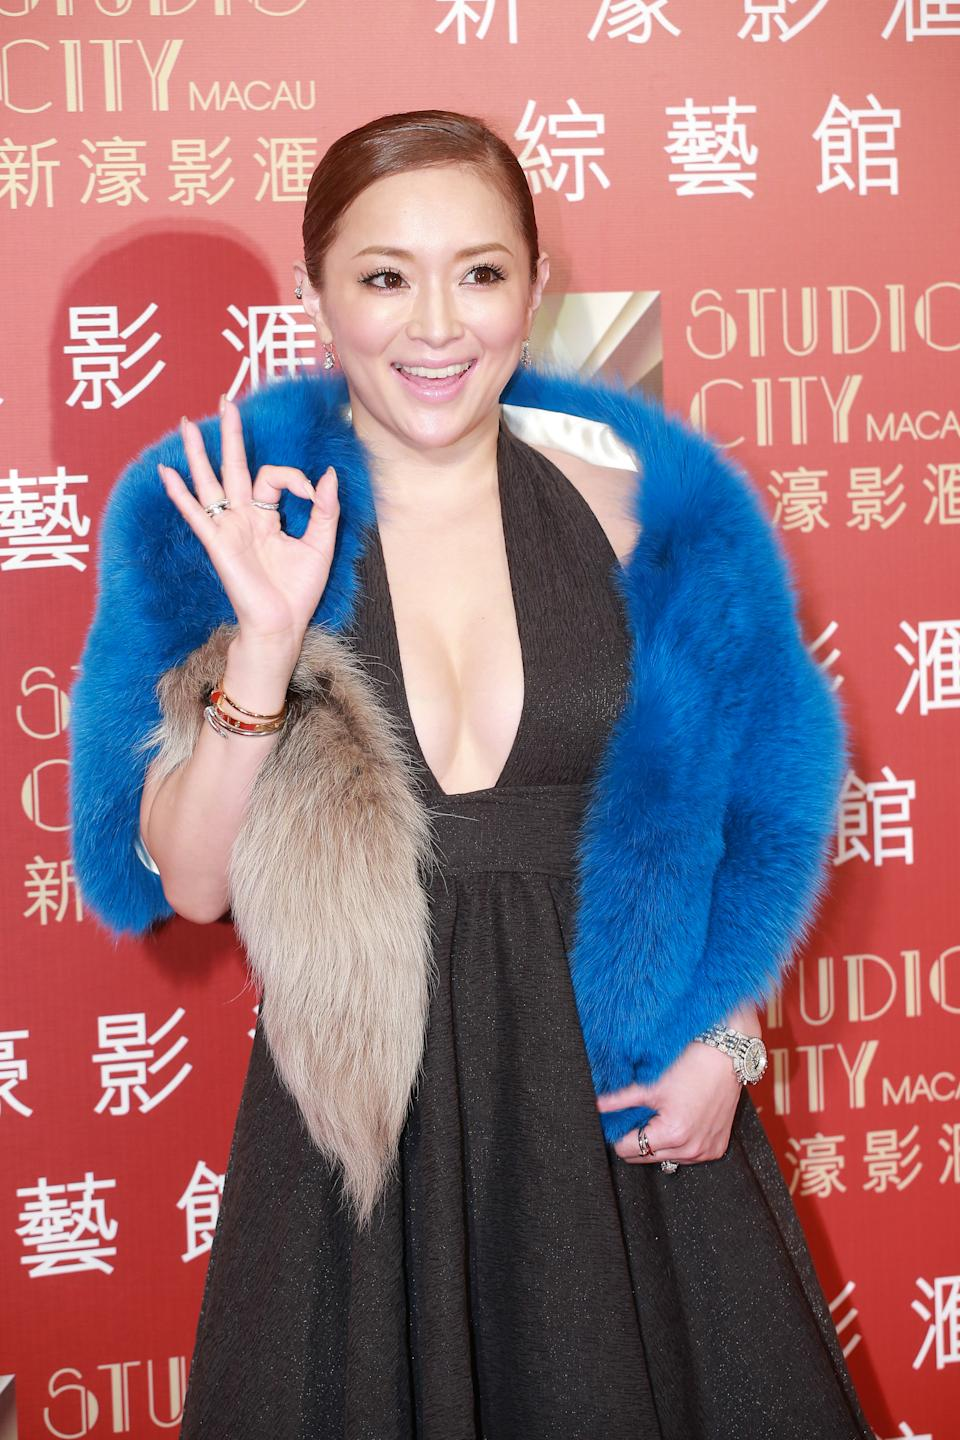 """MACAU - FEBRUARY 21:  (CHINA OUT) Japanese singer Ayumi Hamasaki comes to watch Madonna's concert """"Rebel Heart Tour"""" on February 21, 2016 in Macau, China.  (Photo by Visual China Group via Getty Images/Visual China Group via Getty Images)"""